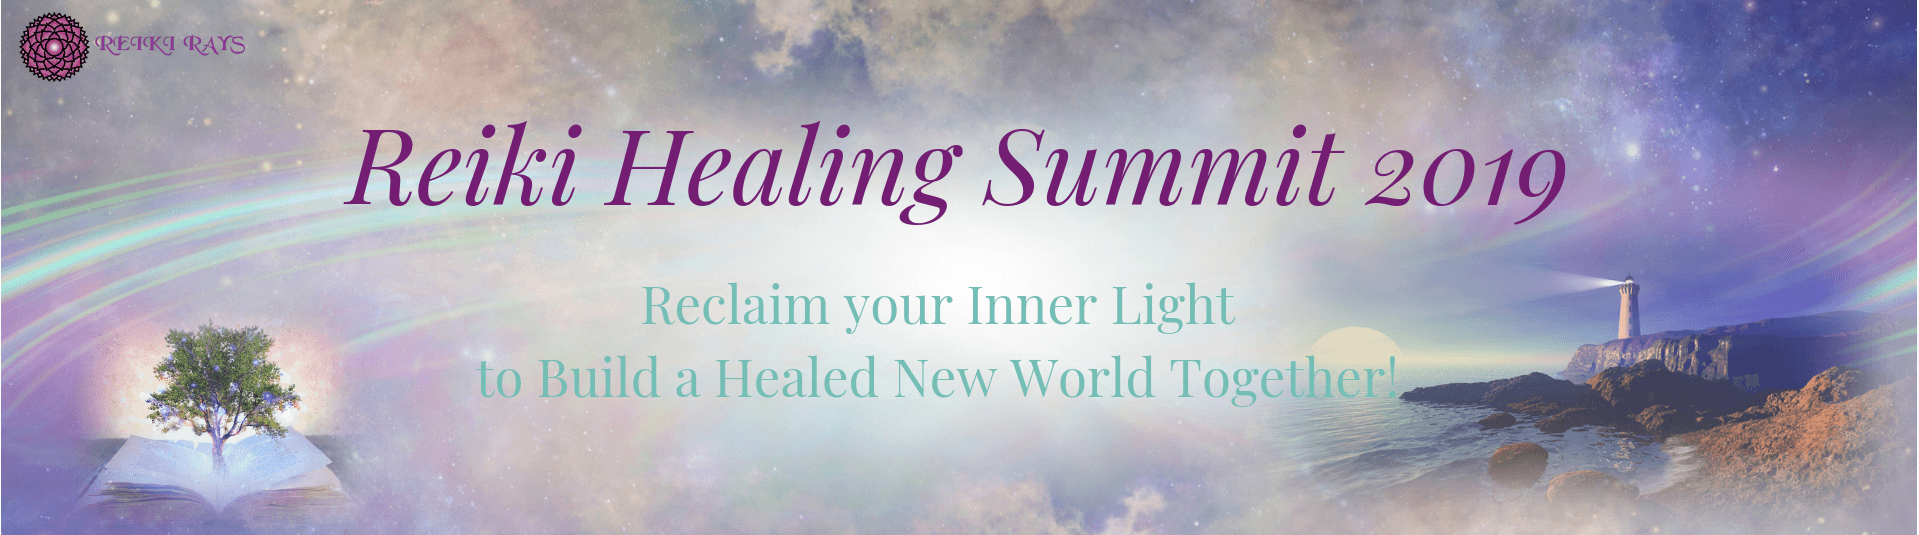 Reiki Healing Summit header image